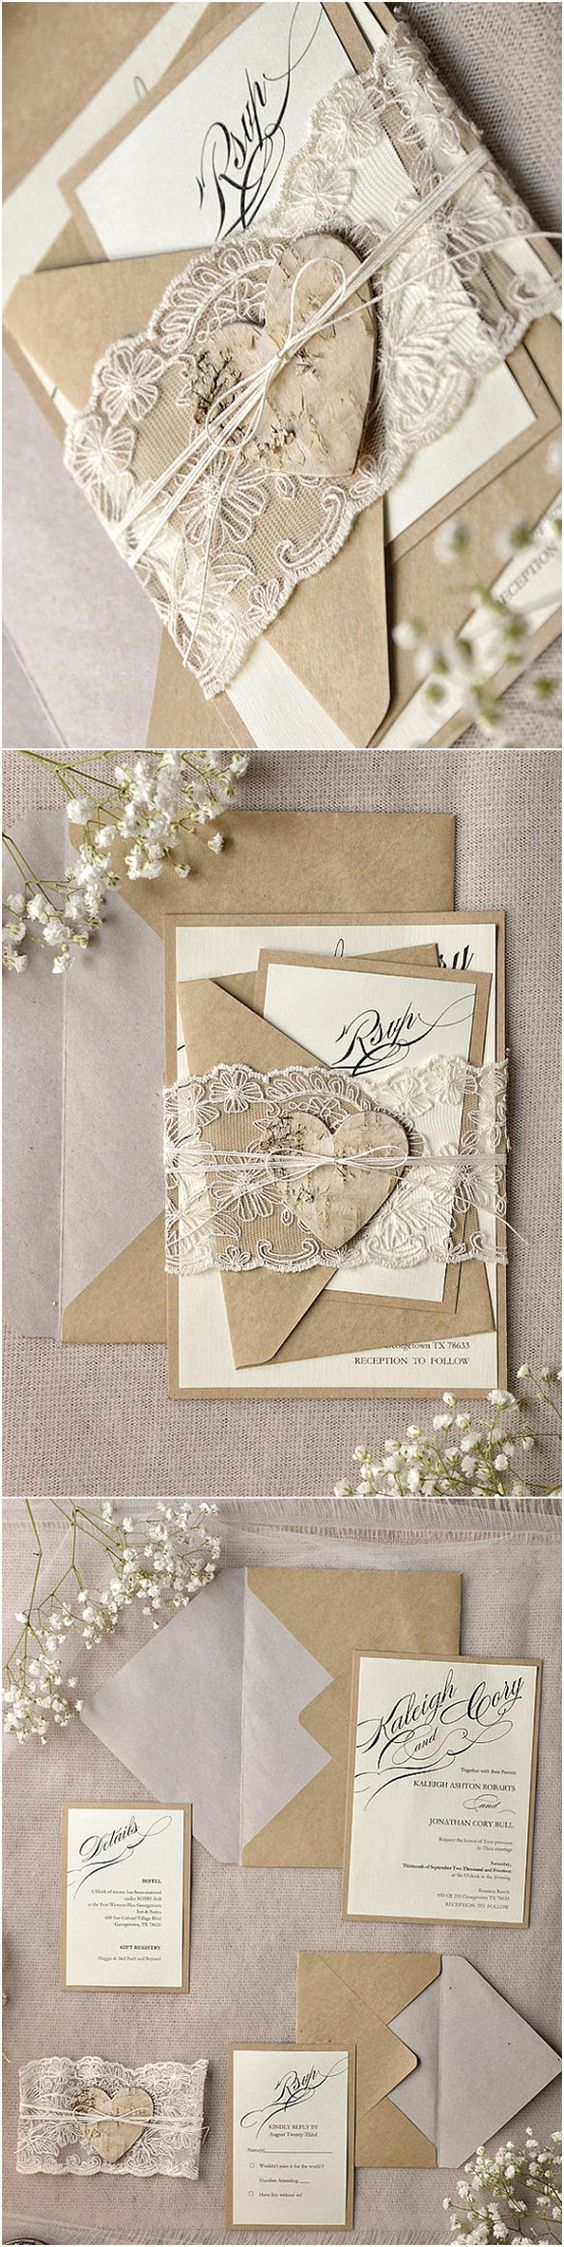 Rustic Calligraphy Recycled Lace Wedding Invitation Kits